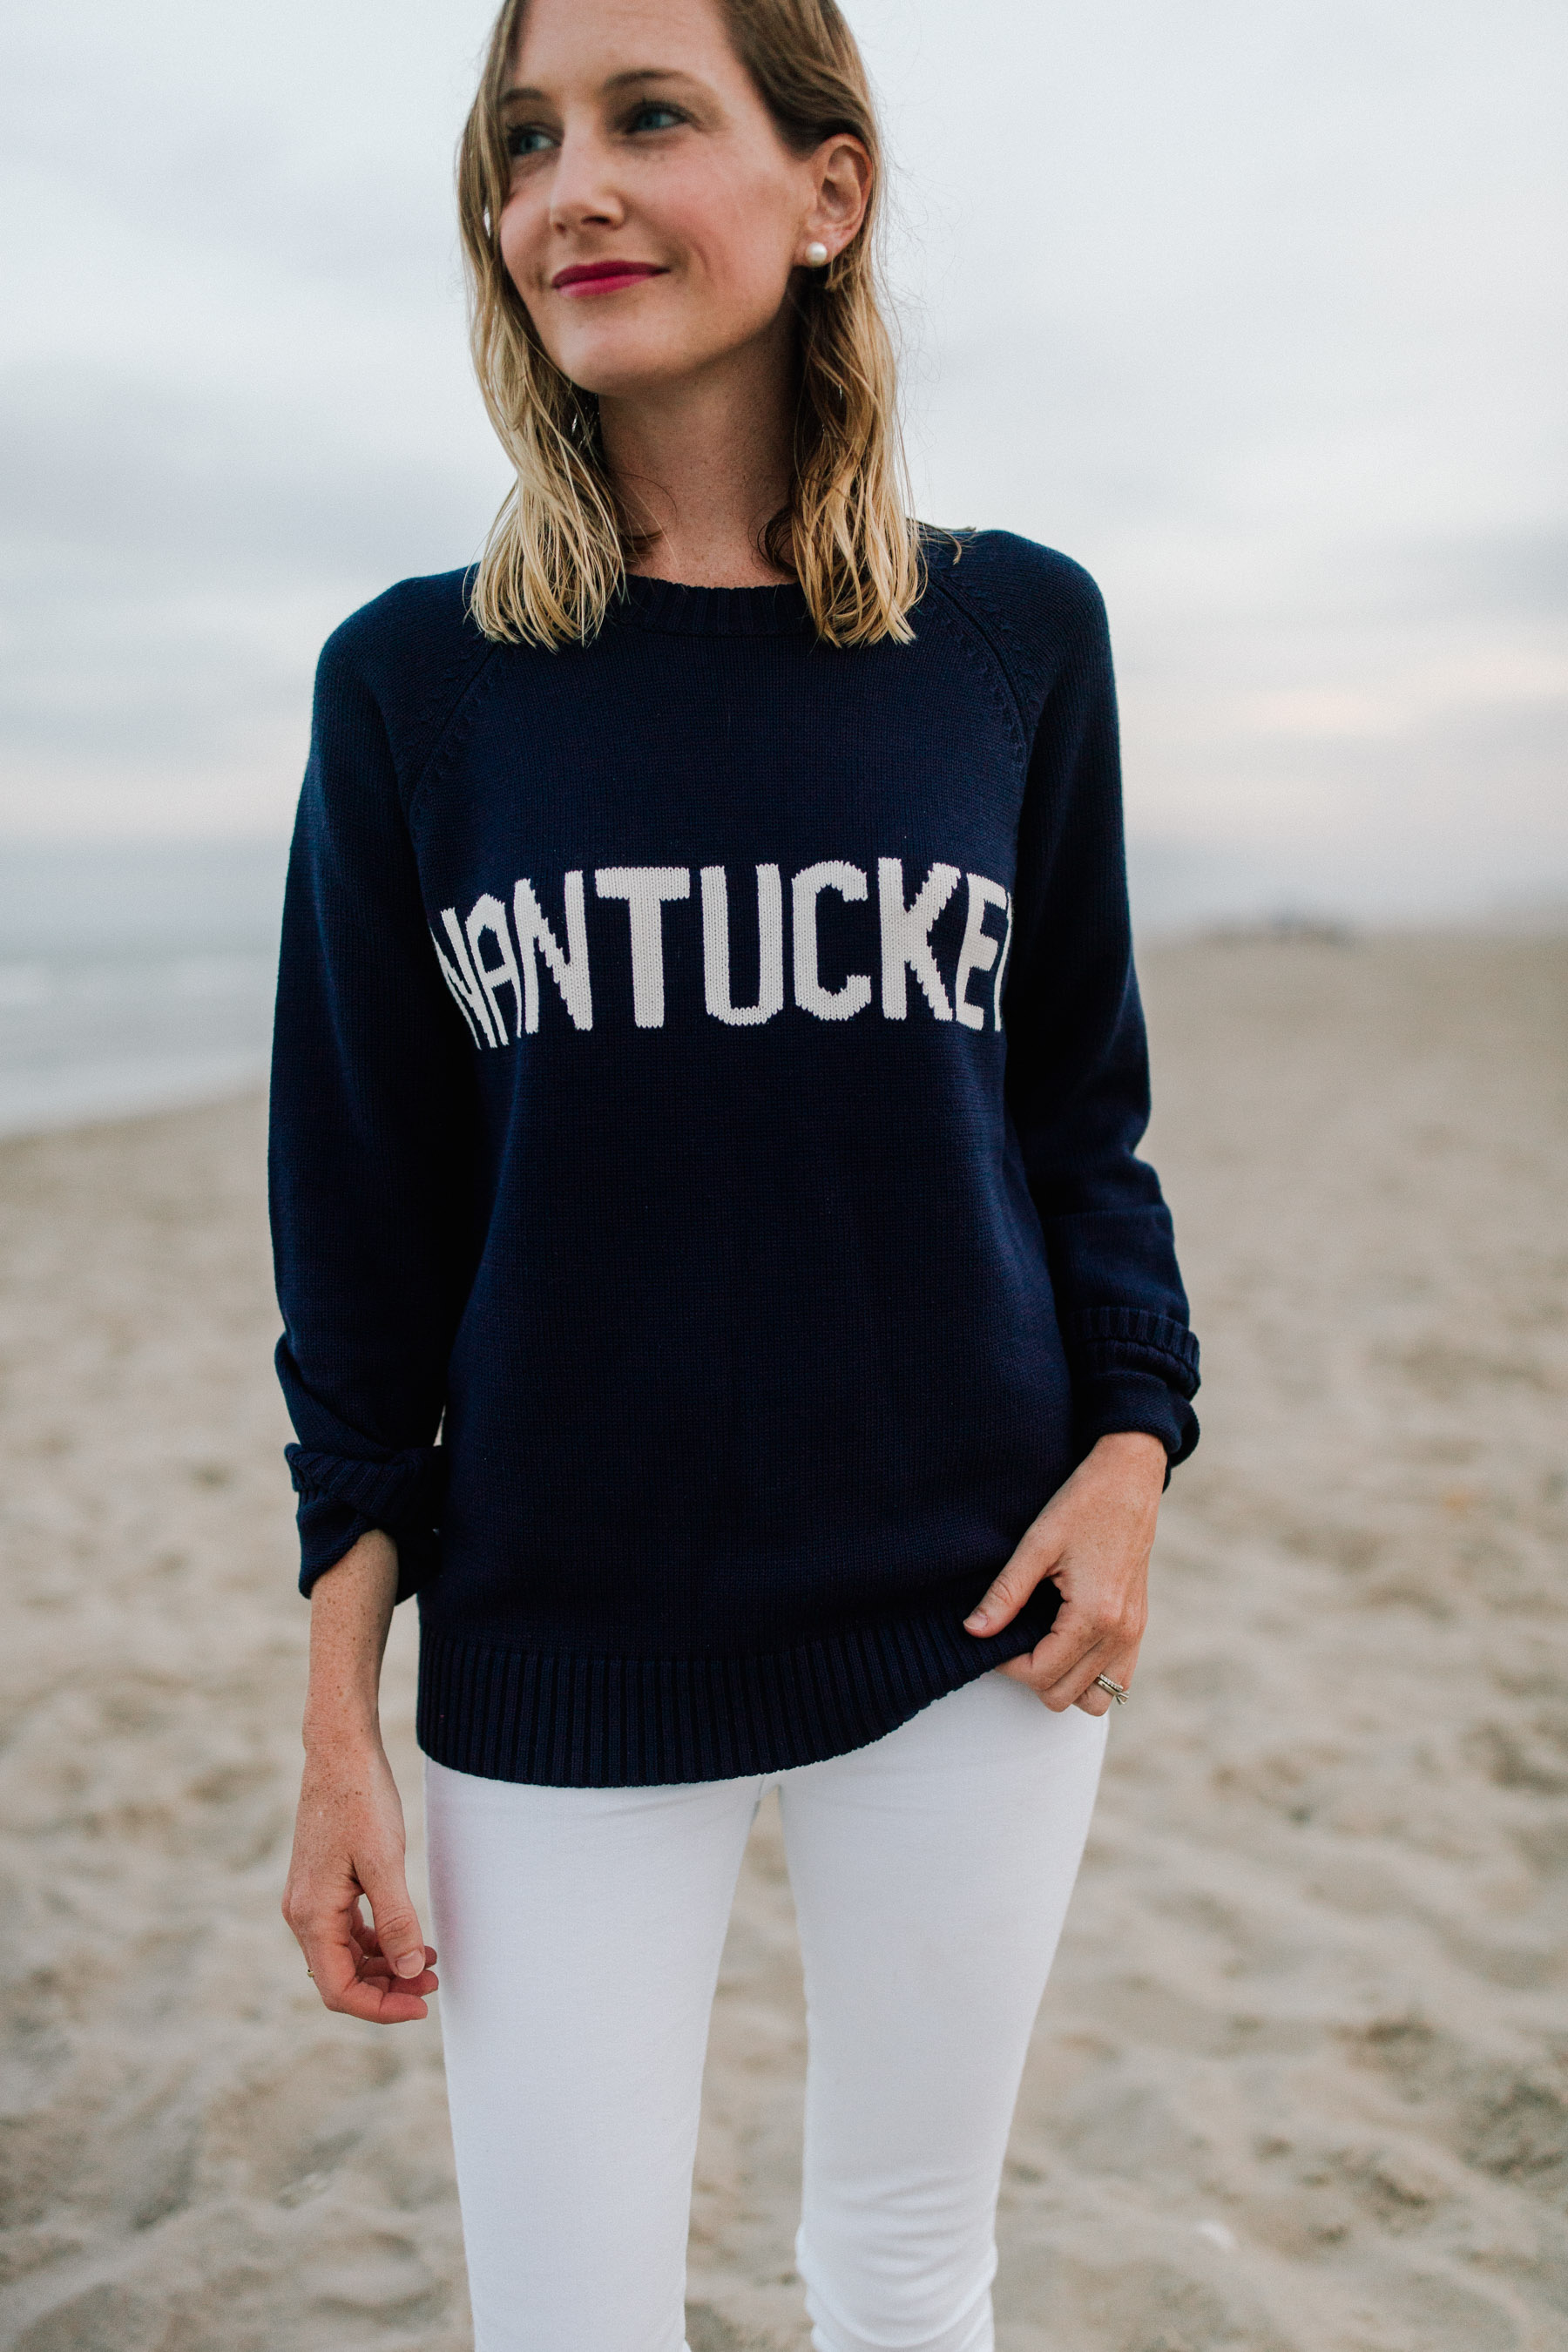 Nantucket Sweater | Kelly in the City